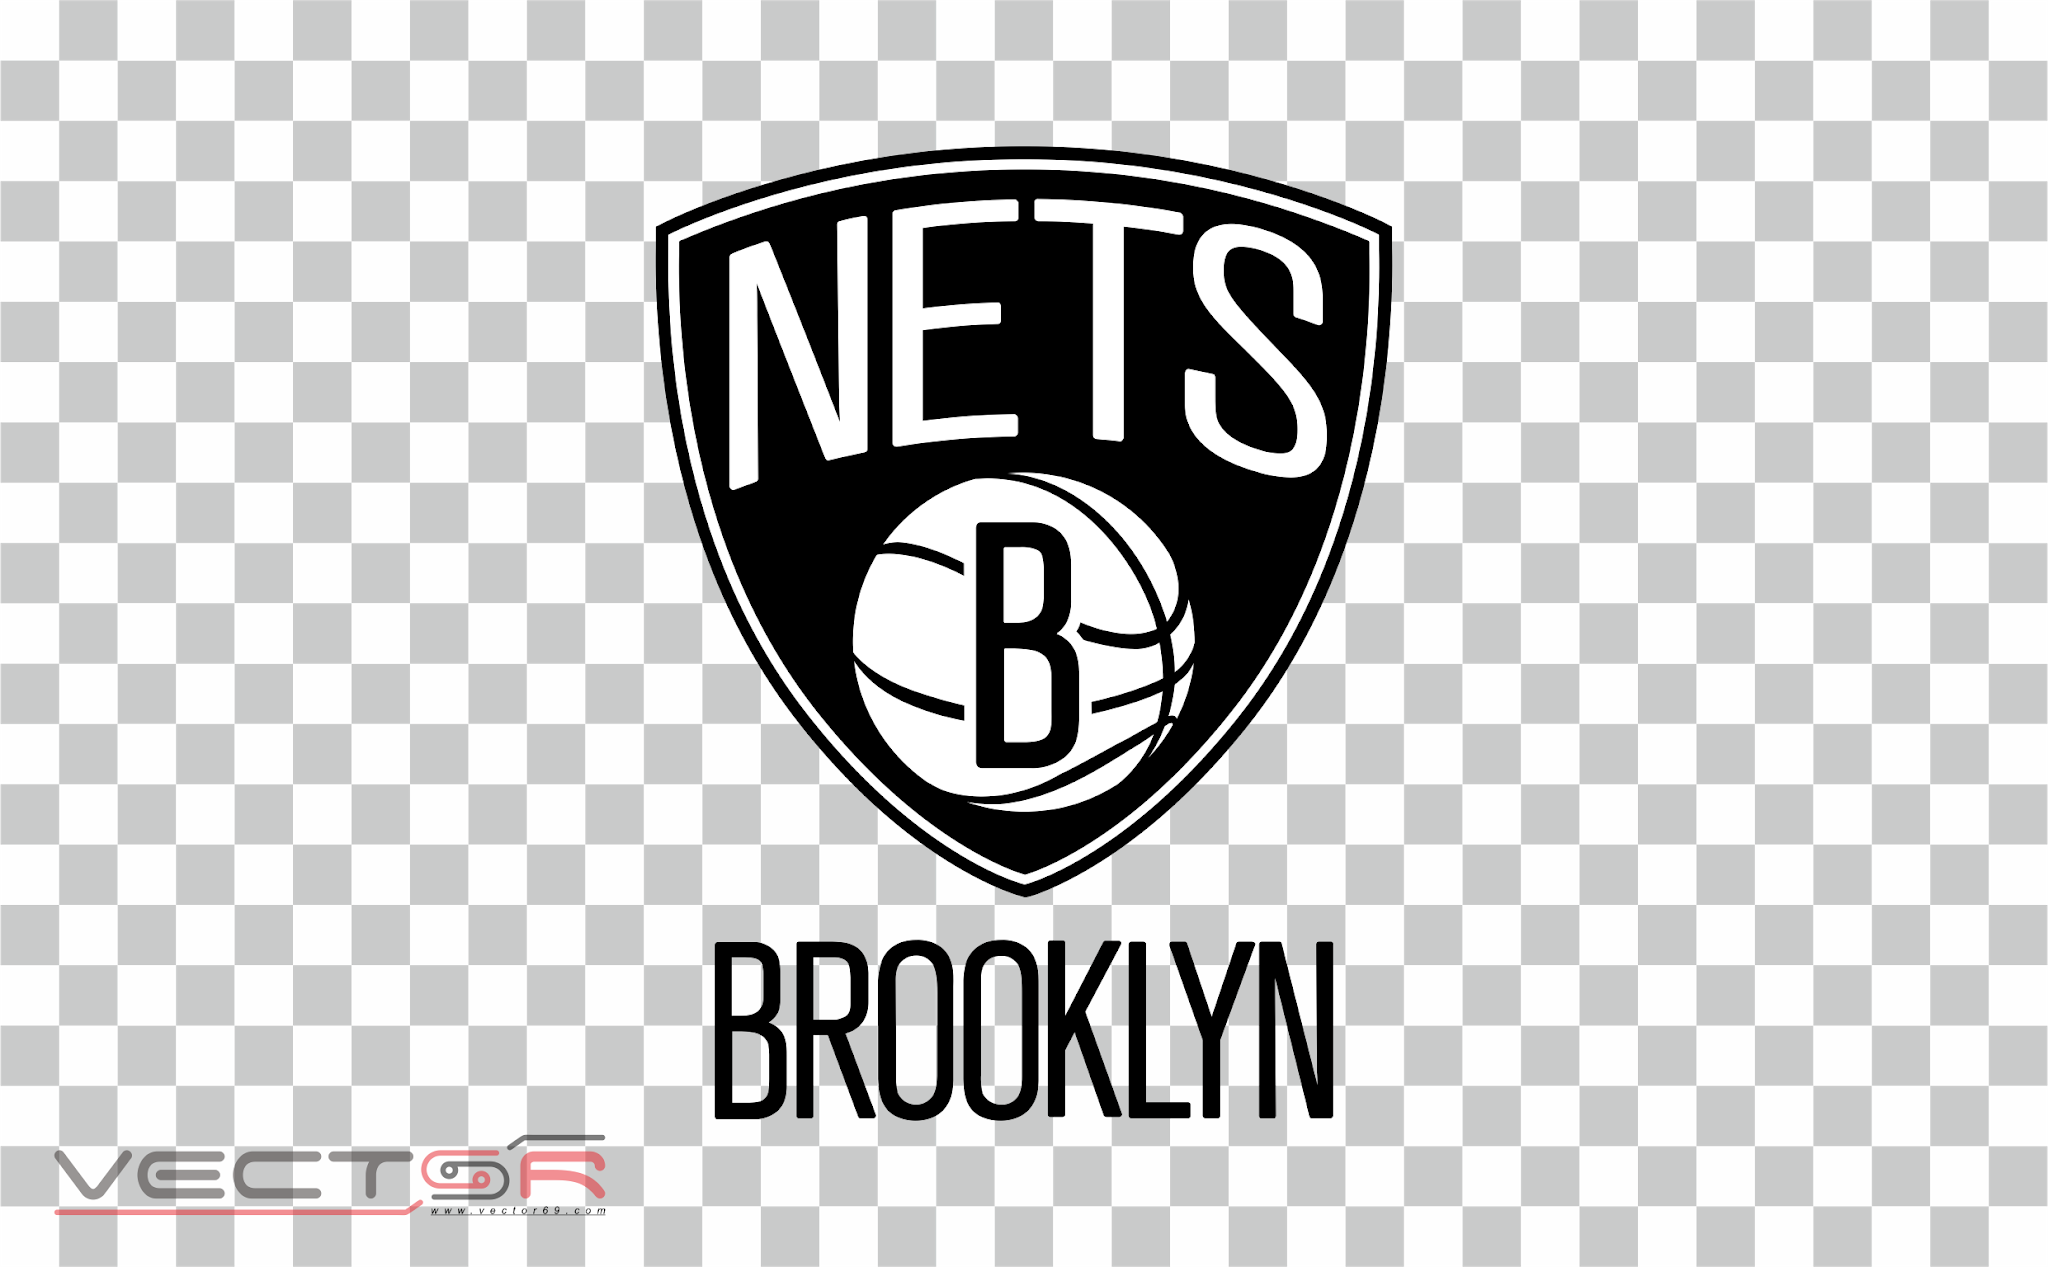 Brooklyn Nets Logo - Download .PNG (Portable Network Graphics) Transparent Images